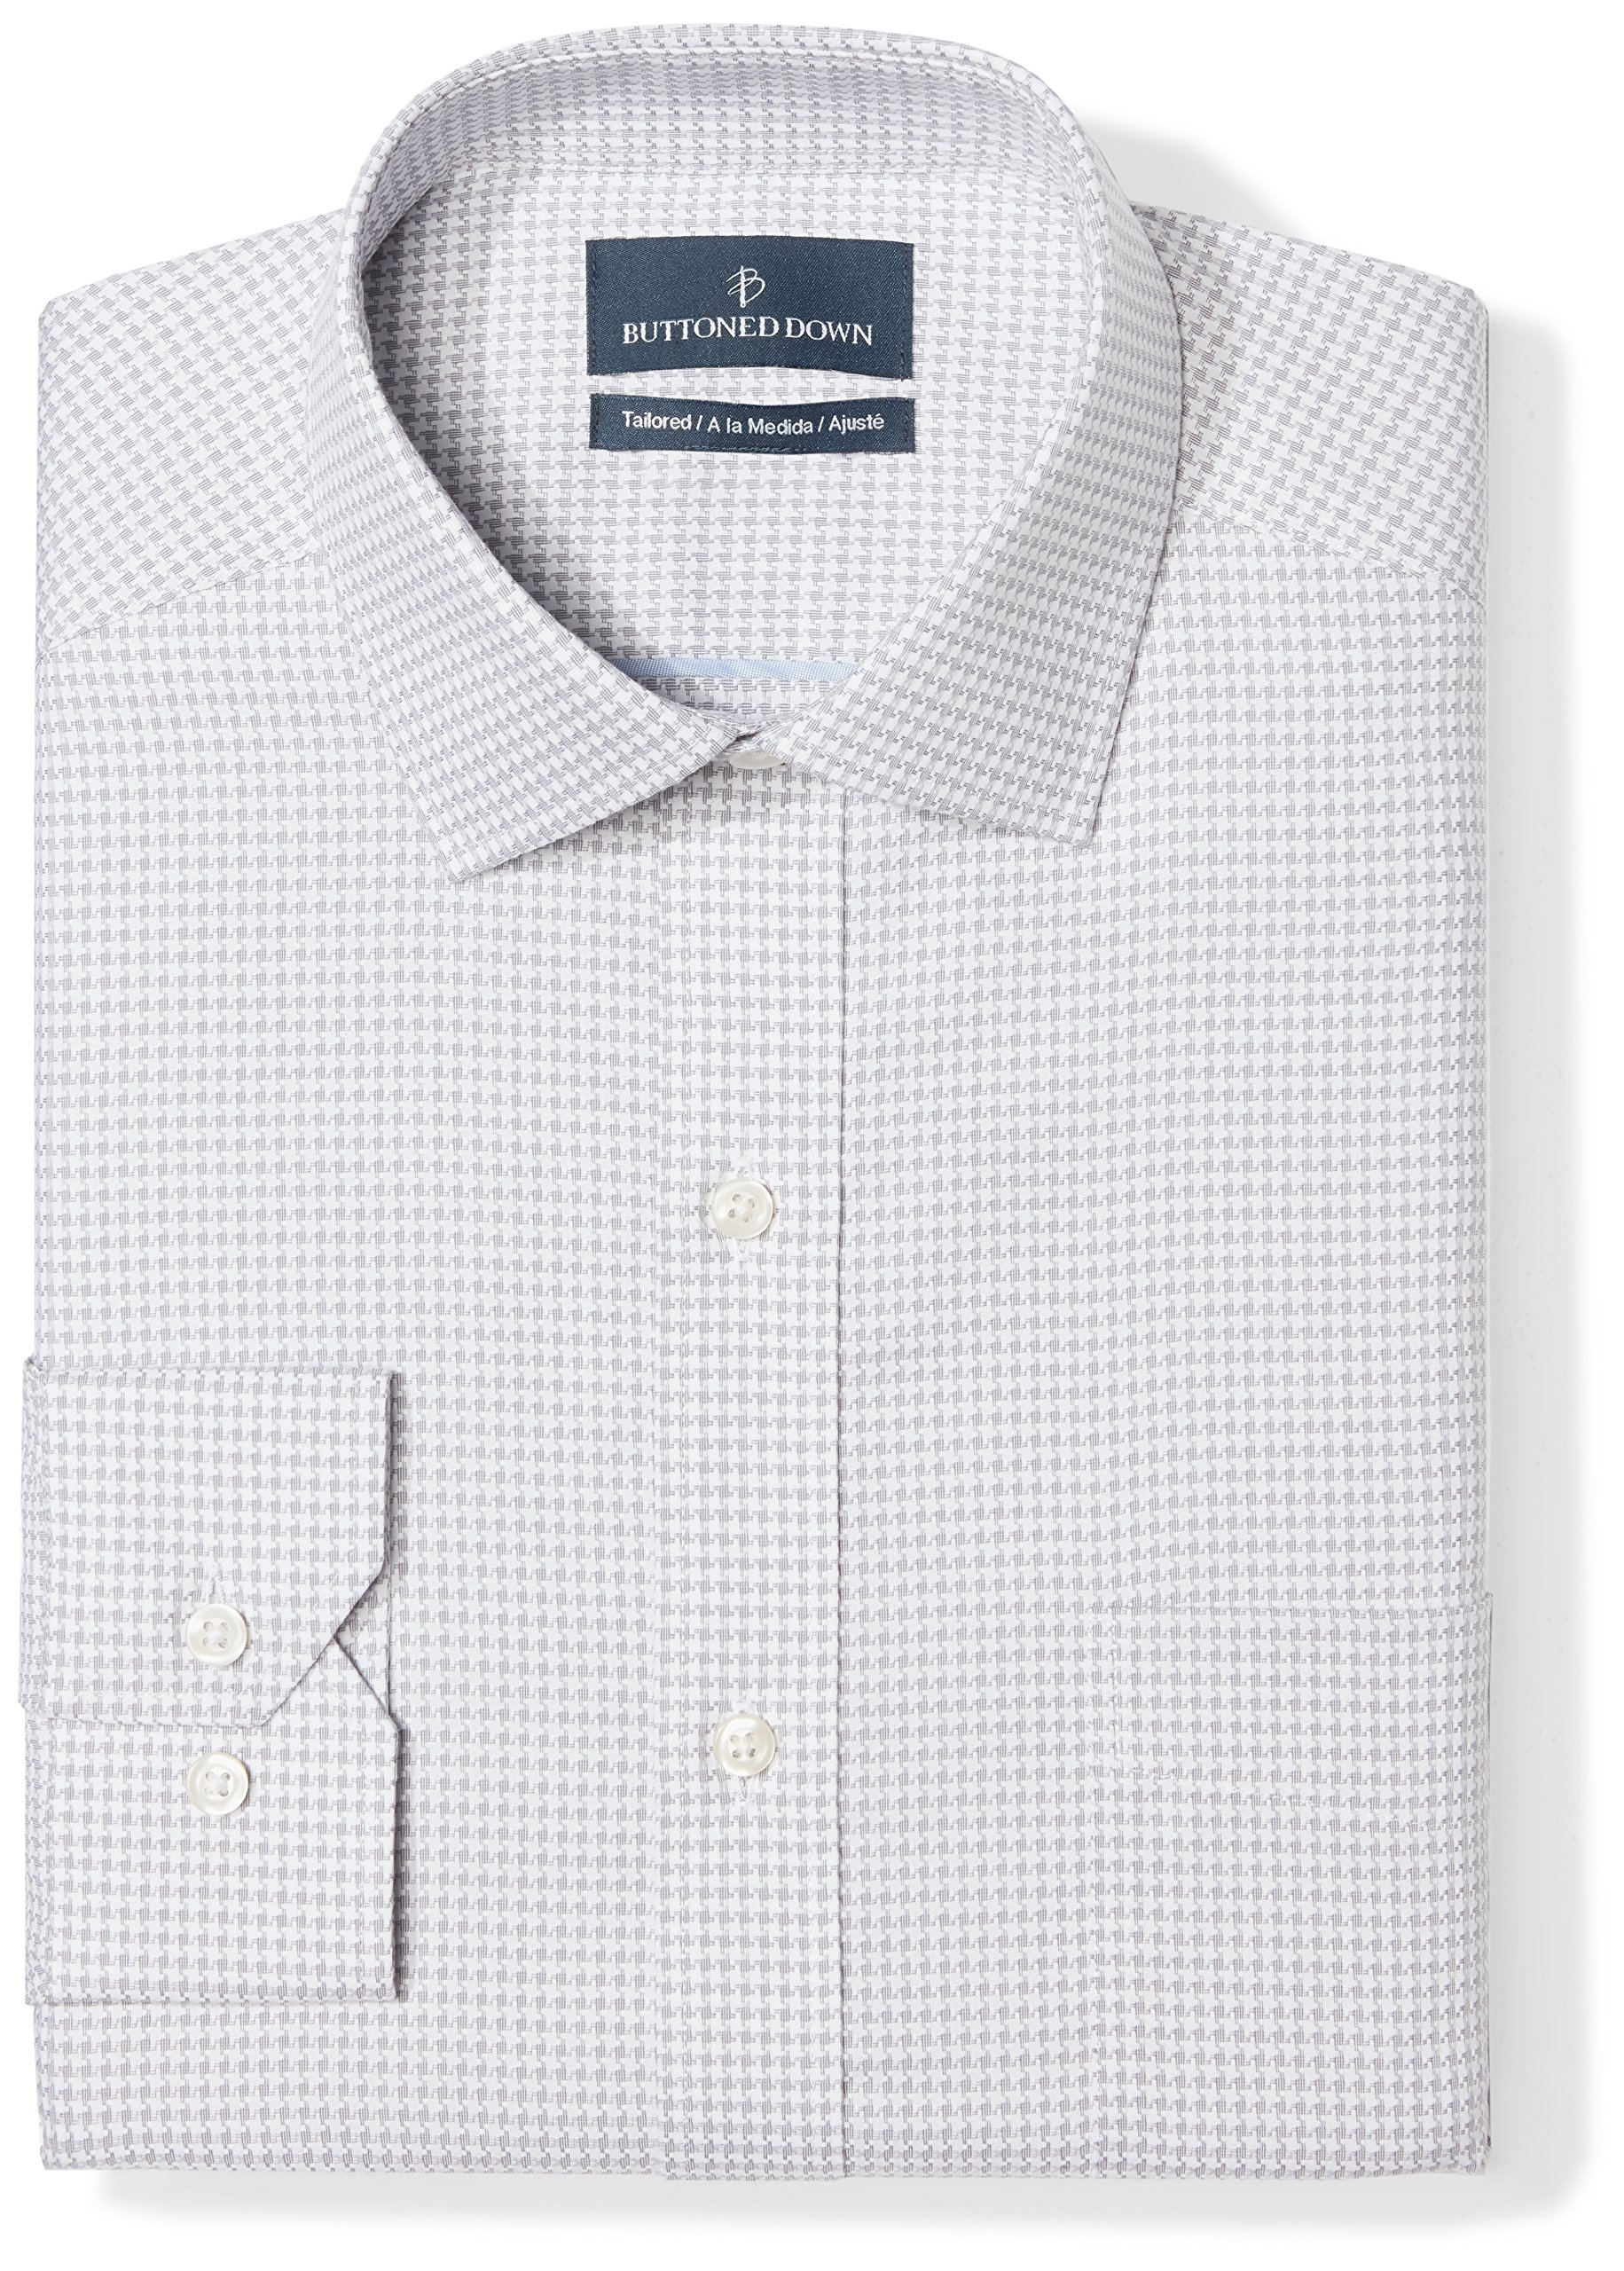 Buttoned Down Men's Tailored Fit Spread-Collar Pattern Non-Iron Dress Shirt, Grey Houndstouth, 16'' Neck 33'' Sleeve